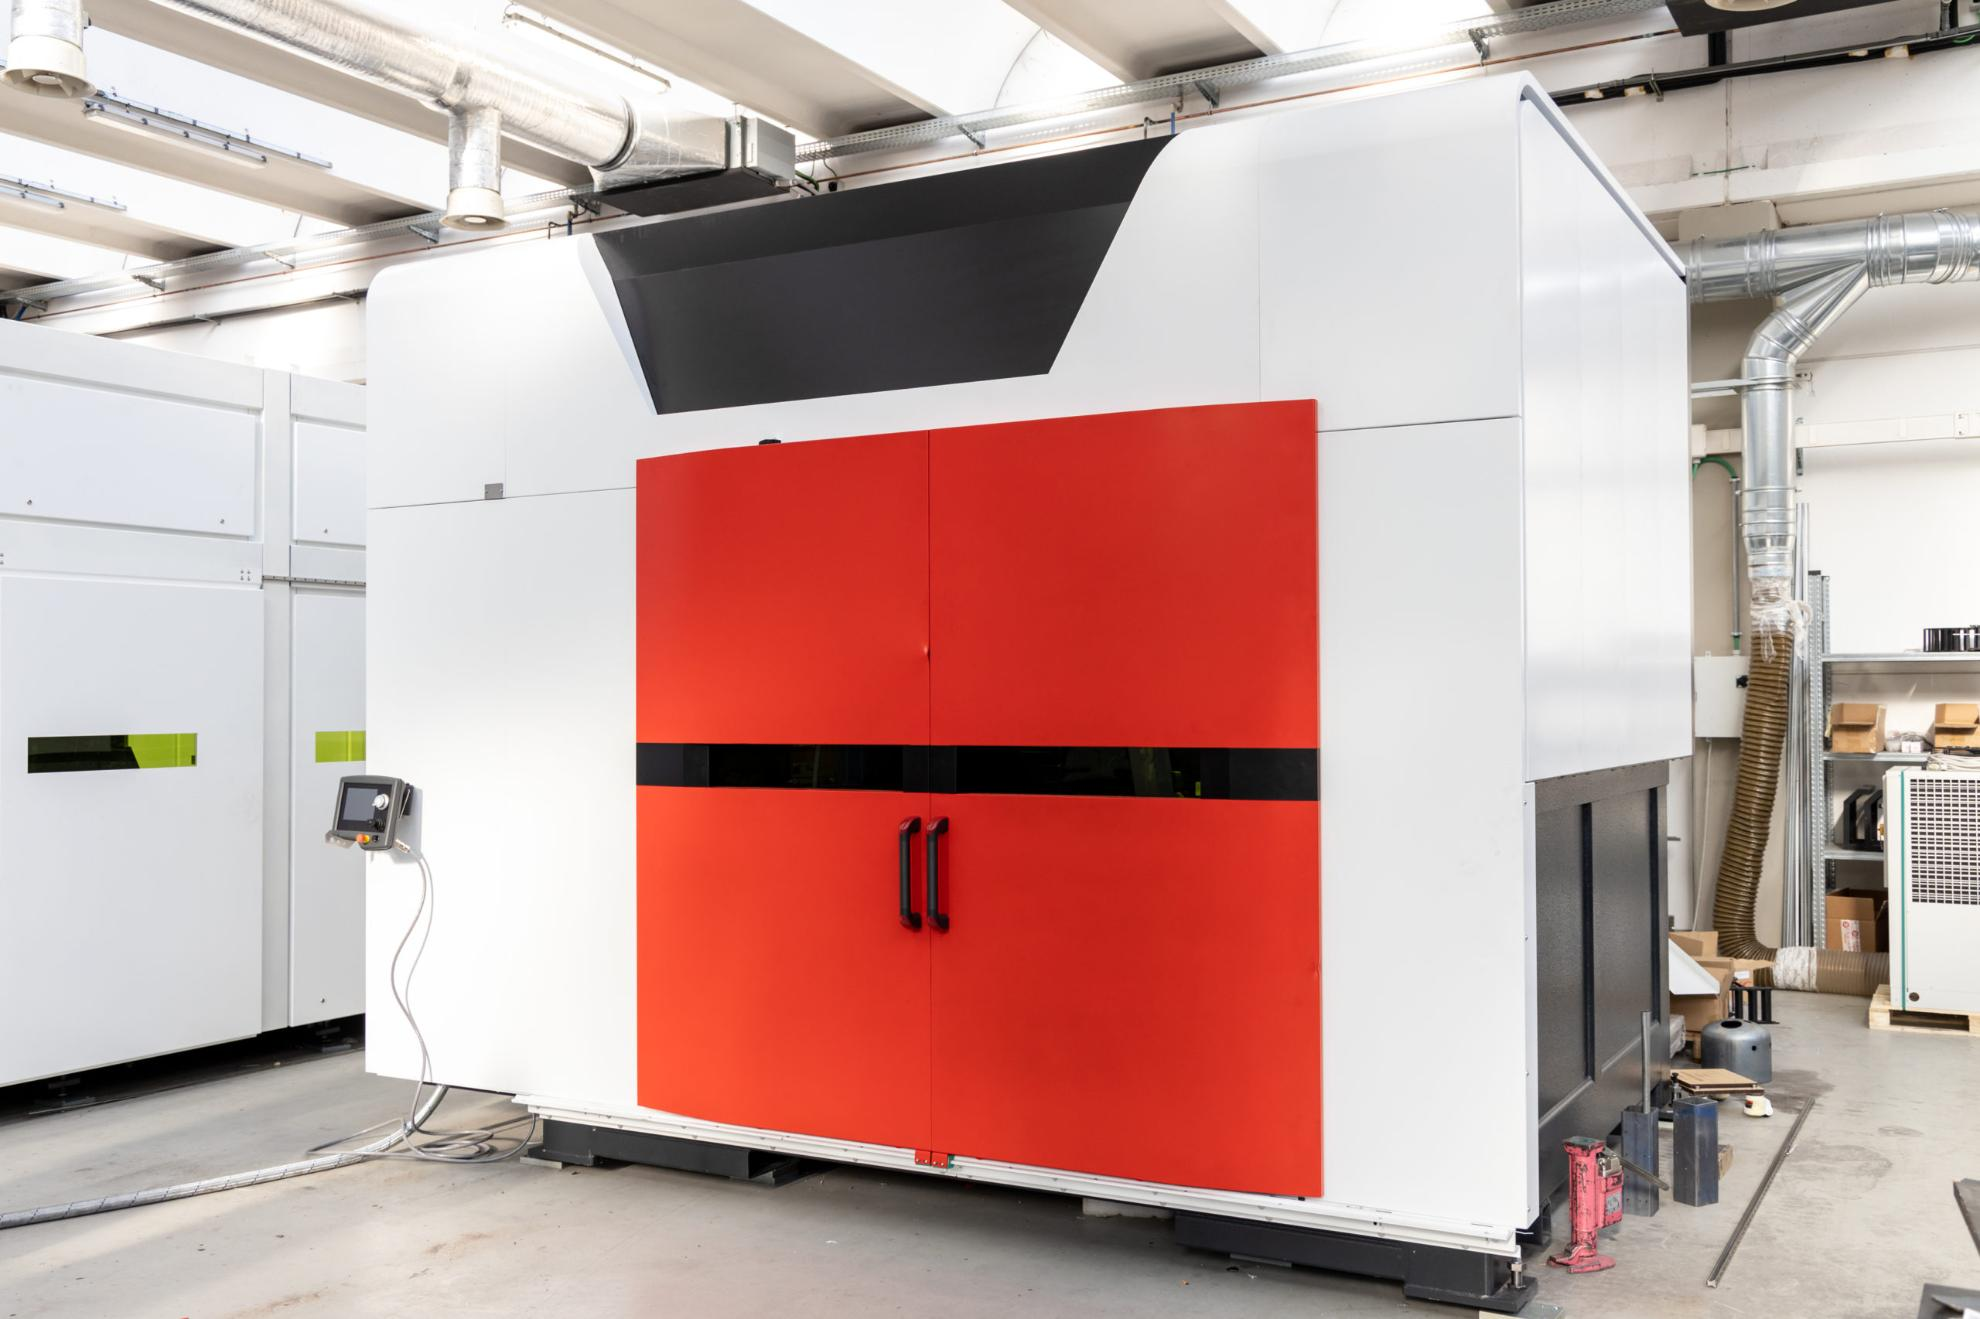 LASER PROCESSING CENTER. ALPHABET 3020 1500W Image